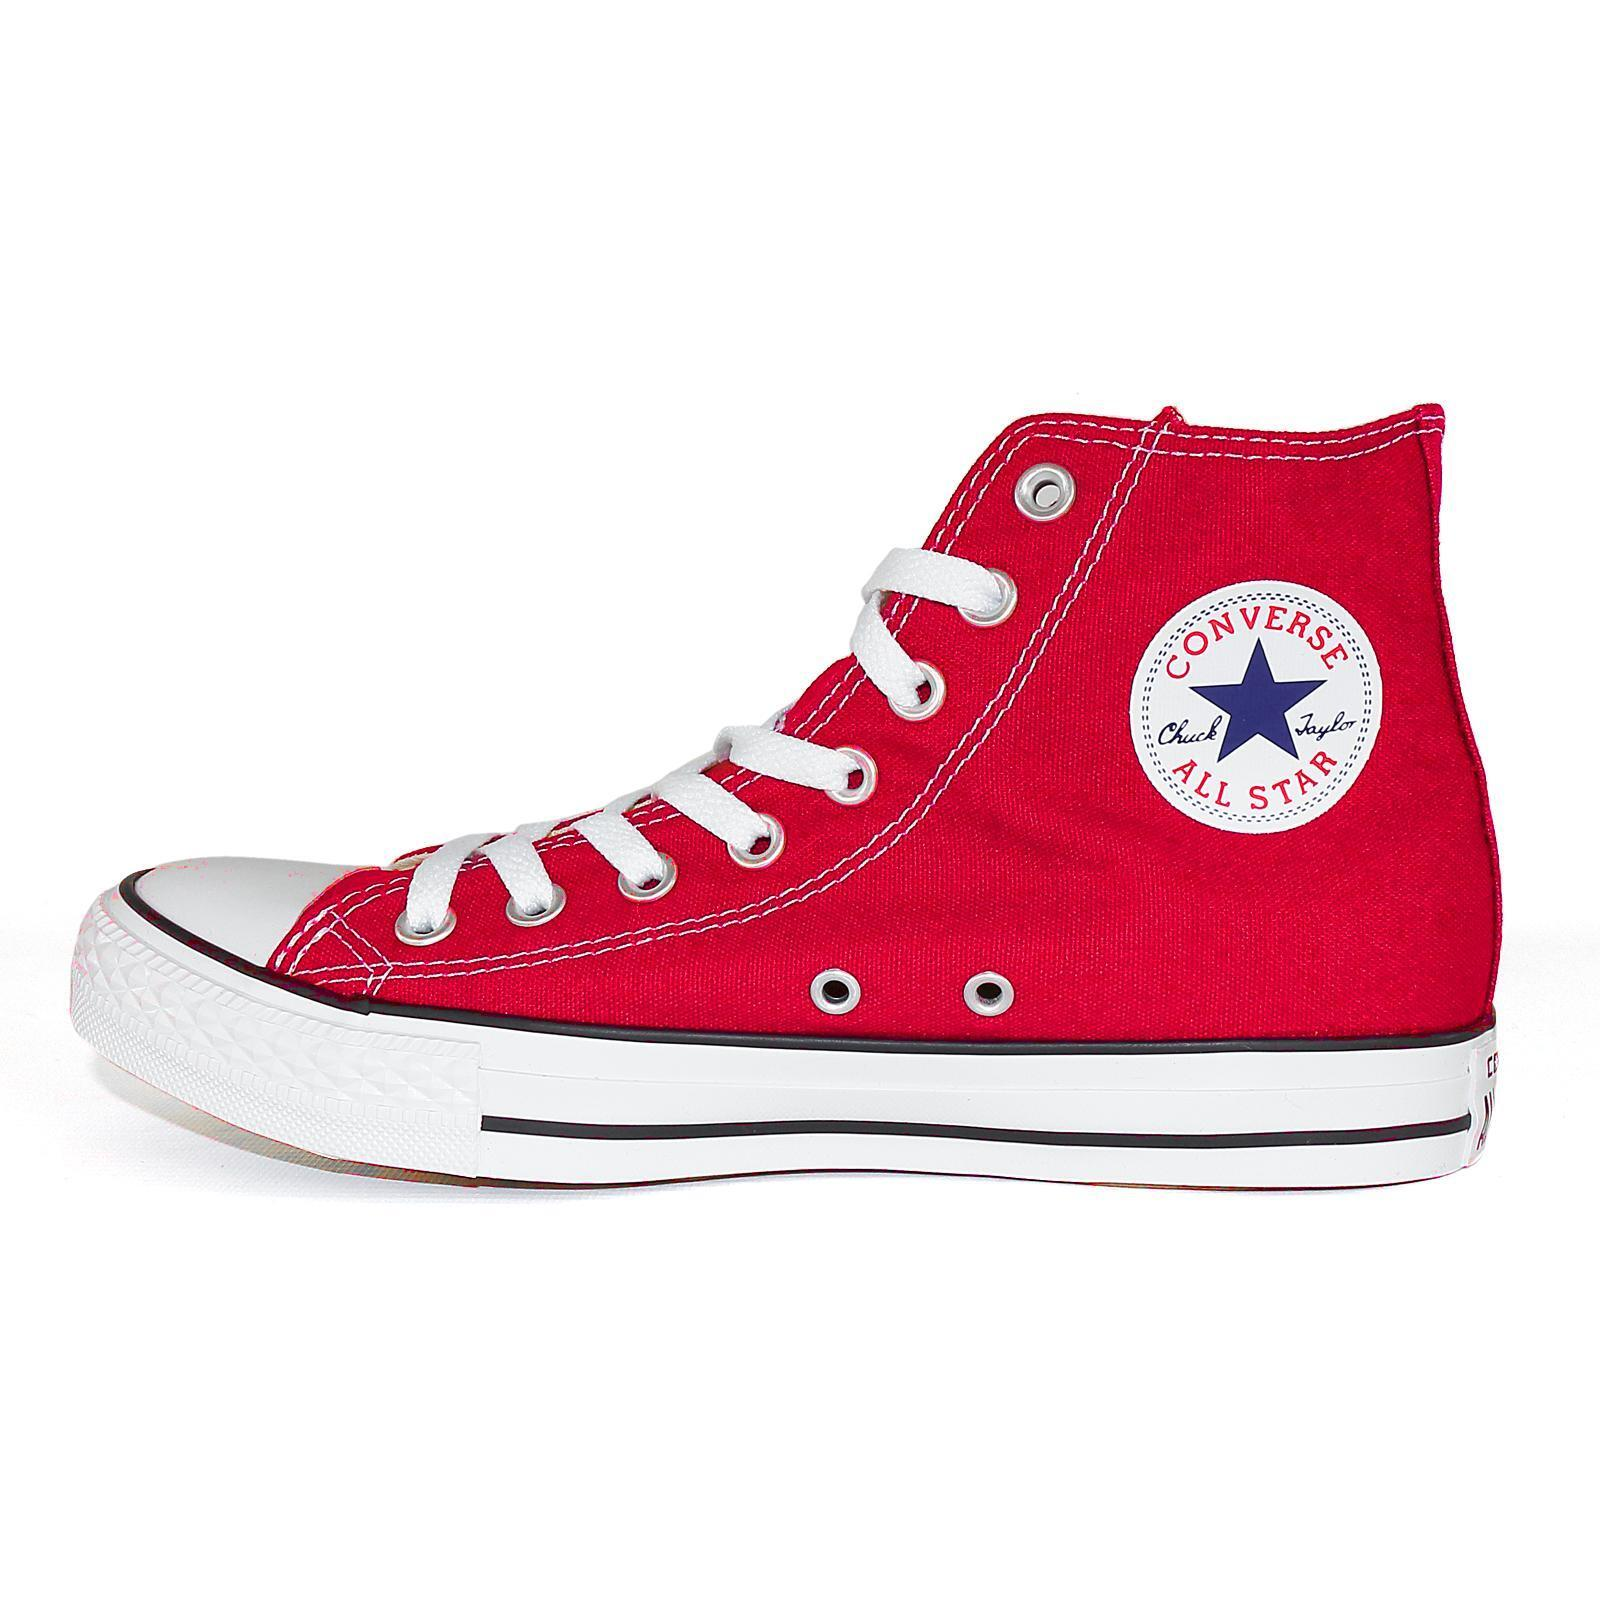 Converse All Star AS HI Season Chucks unisex Schuhe Sneaker, Farbe rot, 50661